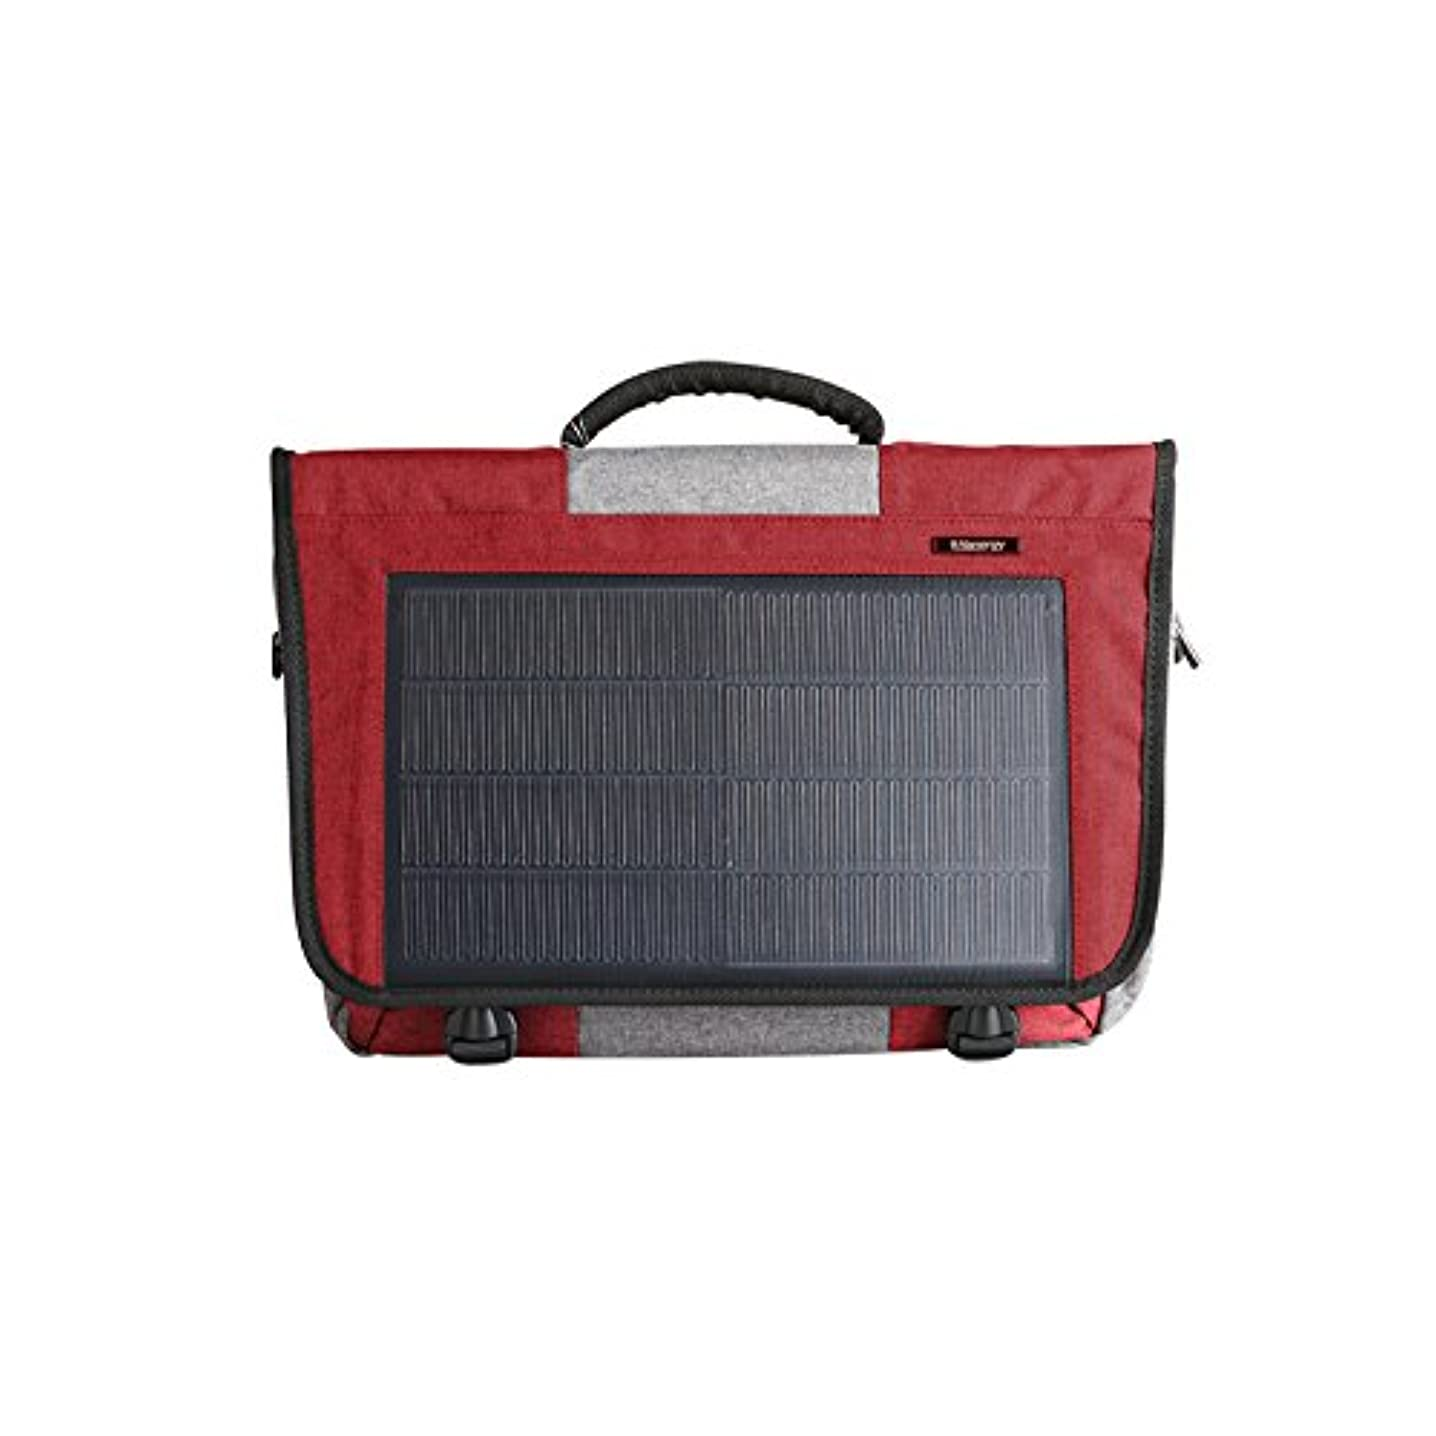 HANERGY 8W Solar Powered Laptop Computer Messenger Bags Electronics Bags Business Office Cases (Red)